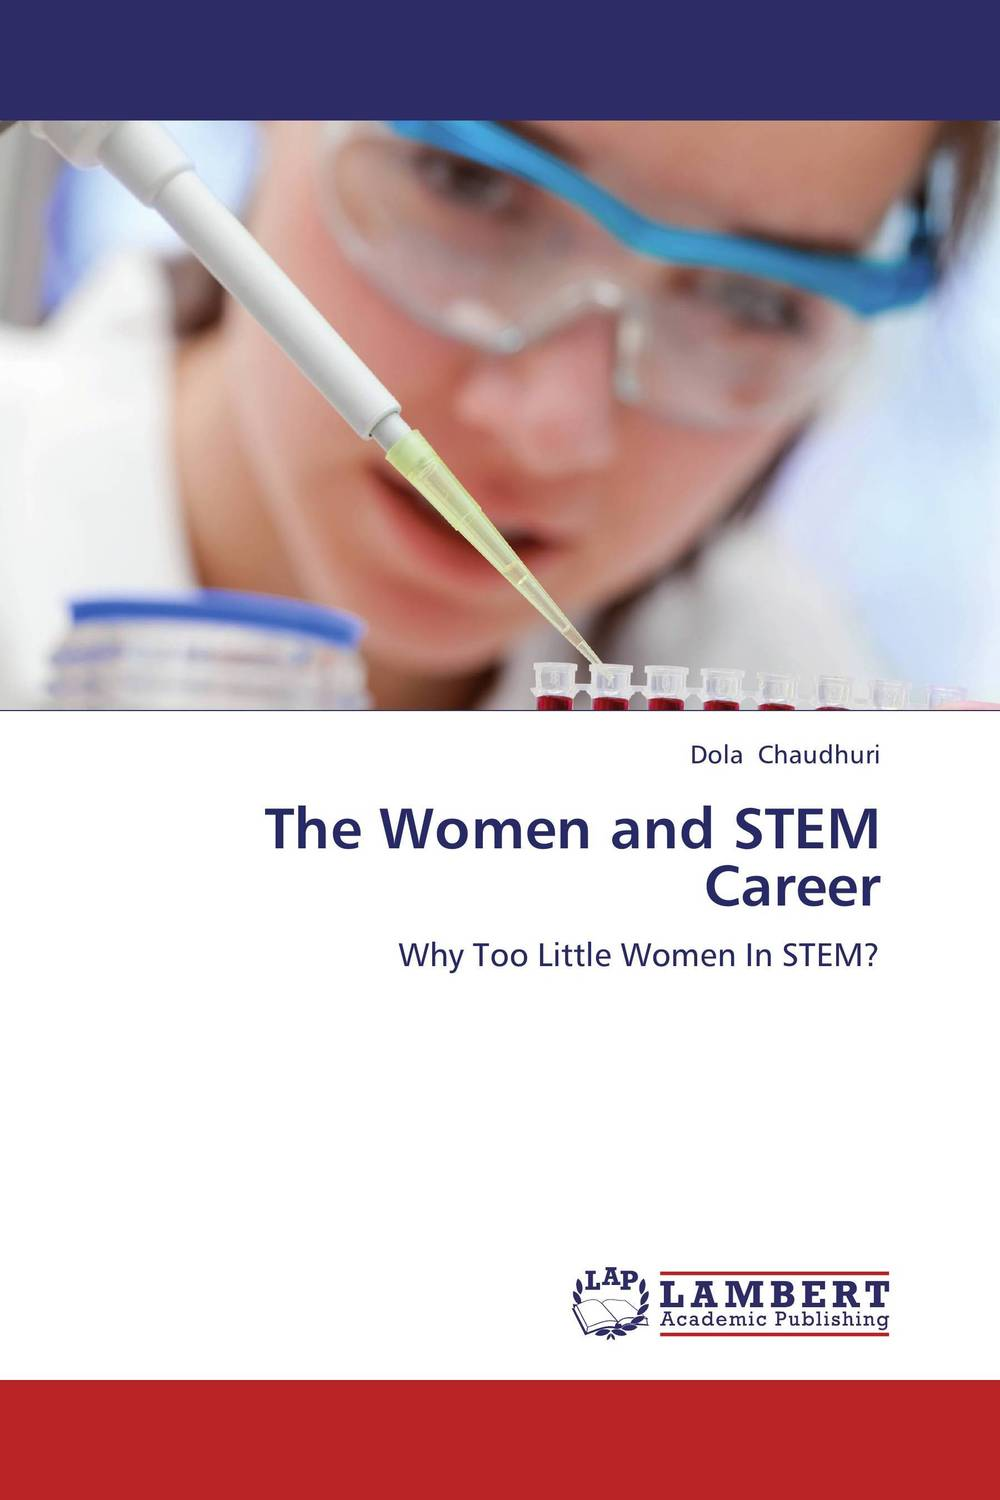 The Women and STEM Career prostate screening motivating factors and barriers